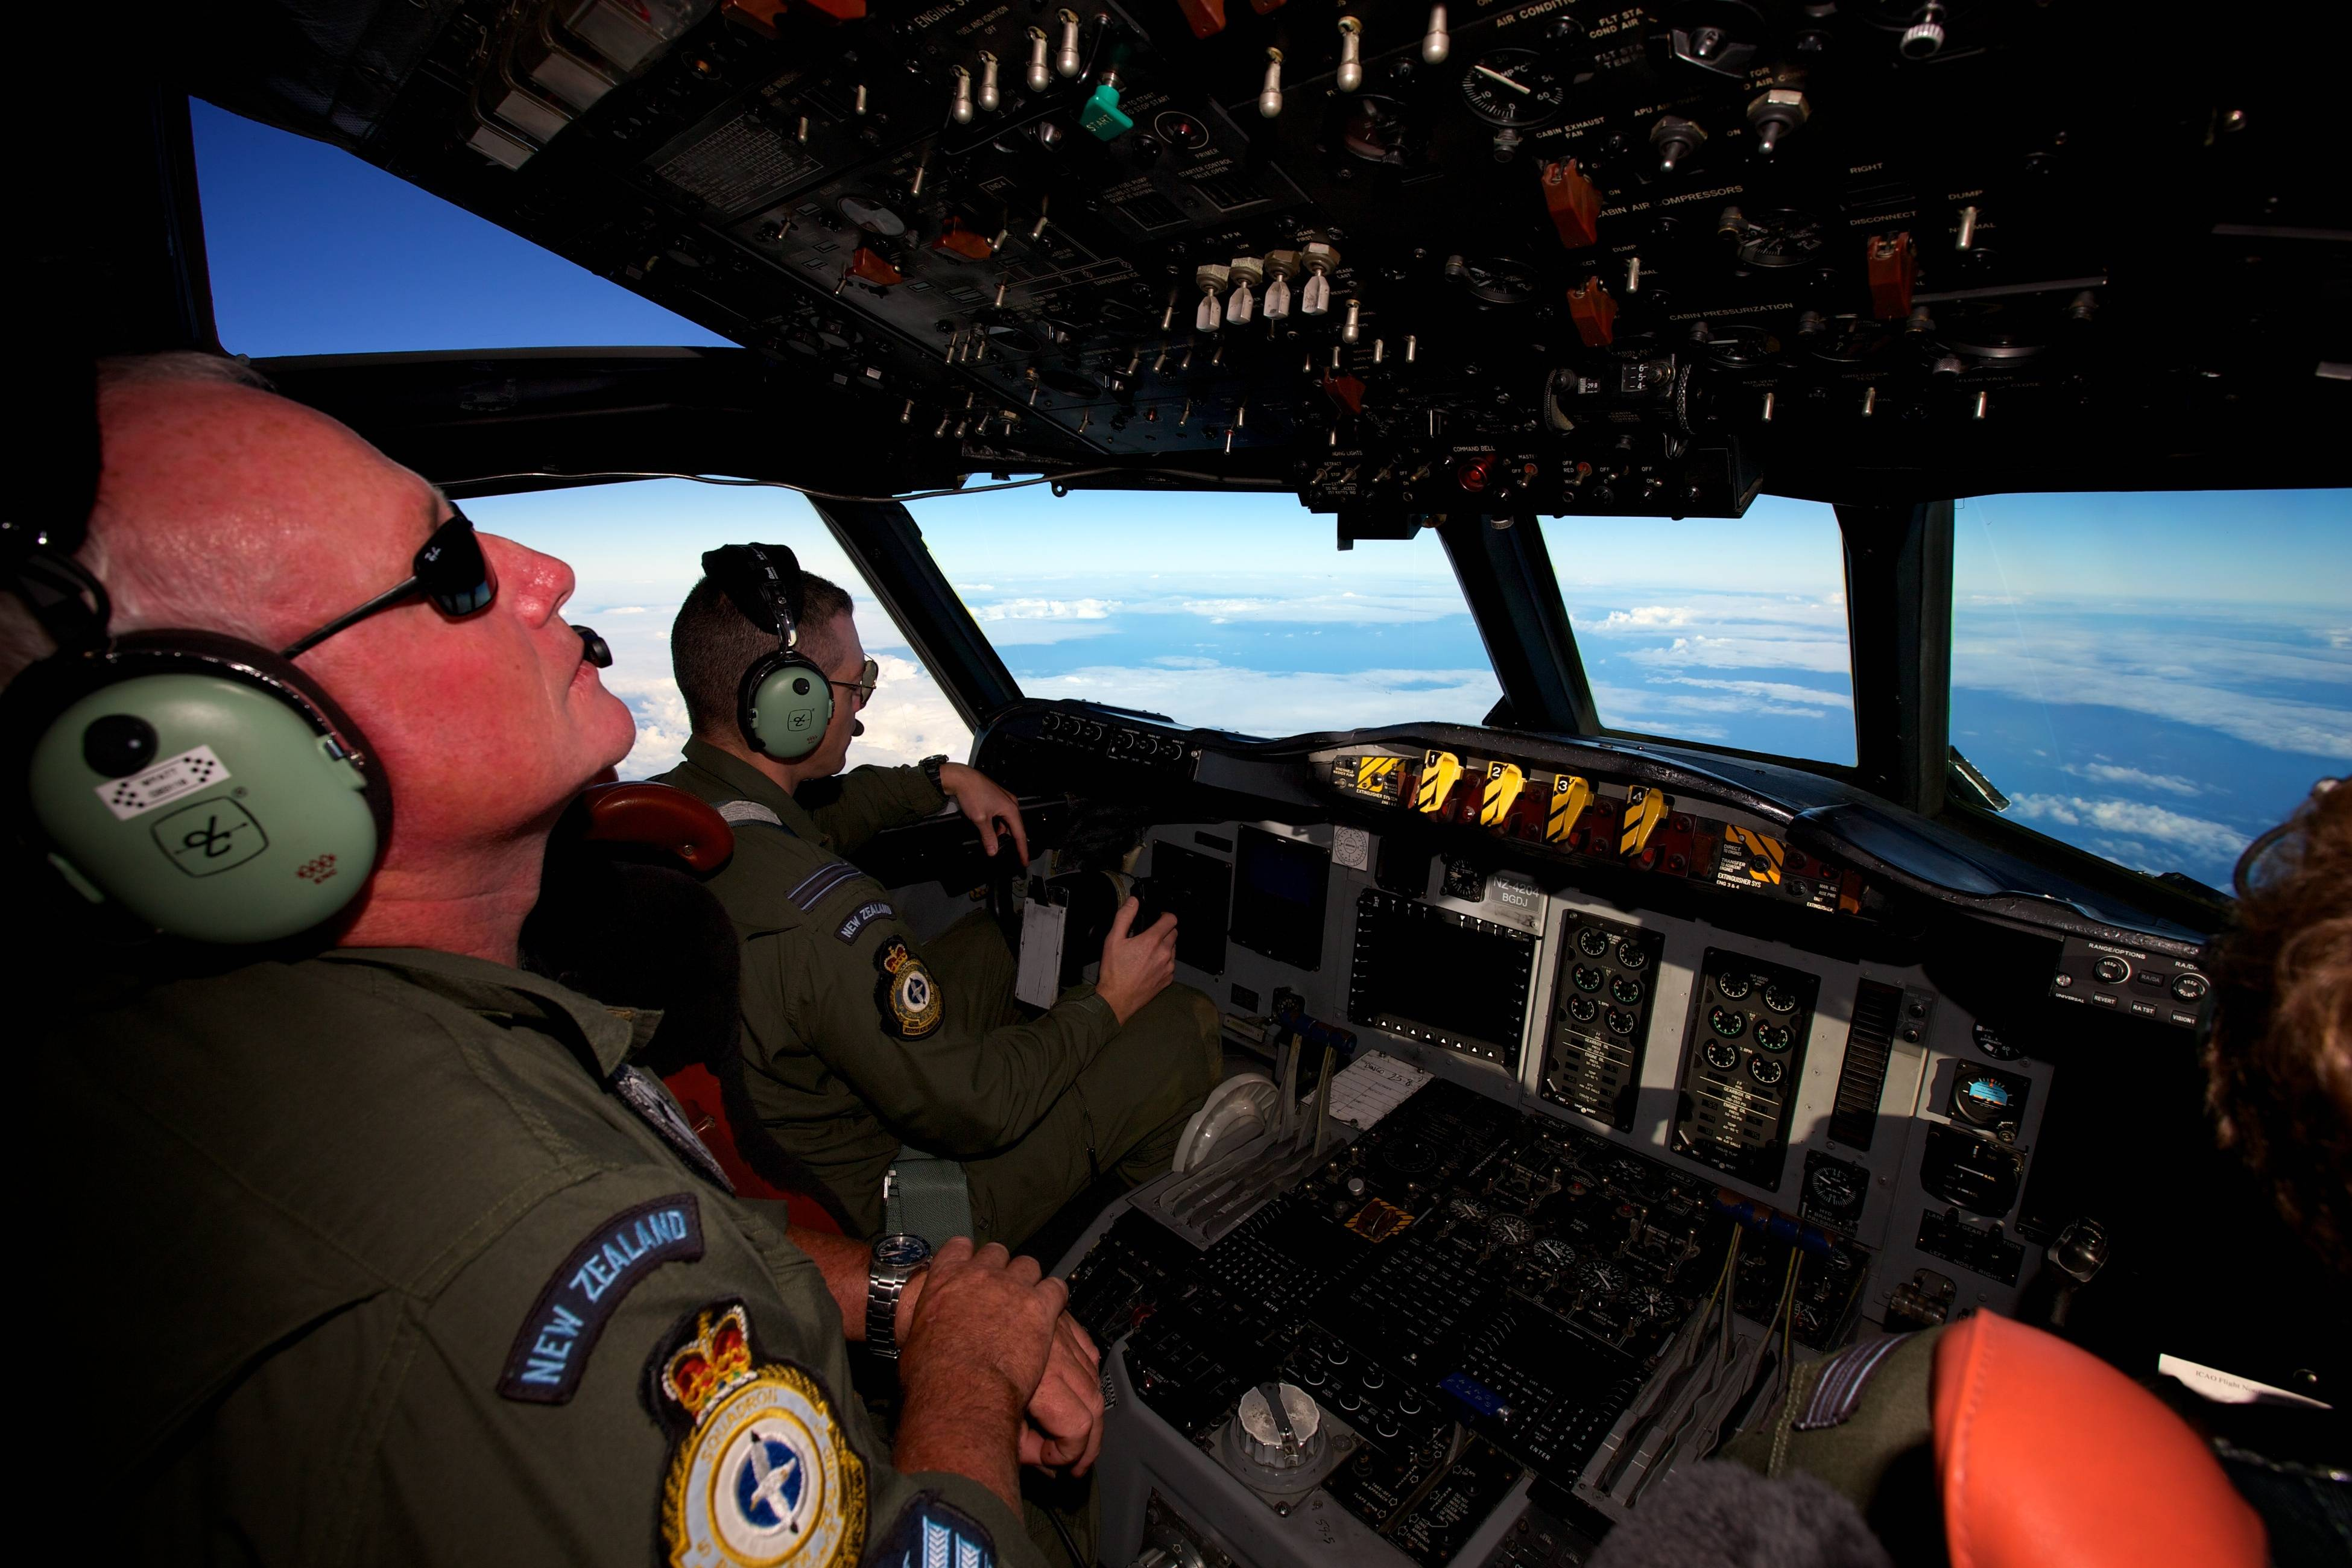 A Royal New Zealand Air Force P-3 Orion is flown by Flt. Lt Tim McAlevey back, in the search for missing Malaysia Airlines Flight MH370 over the Indian Ocean, Friday, April 11, 2014. Authorities are confident that signals detected deep in the Indian Ocean are from the missing Malaysian jet's black boxes, Australia's Prime Minister Tony Abbott said Friday, raising hopes they are close to solving one of aviation's most perplexing mysteries.